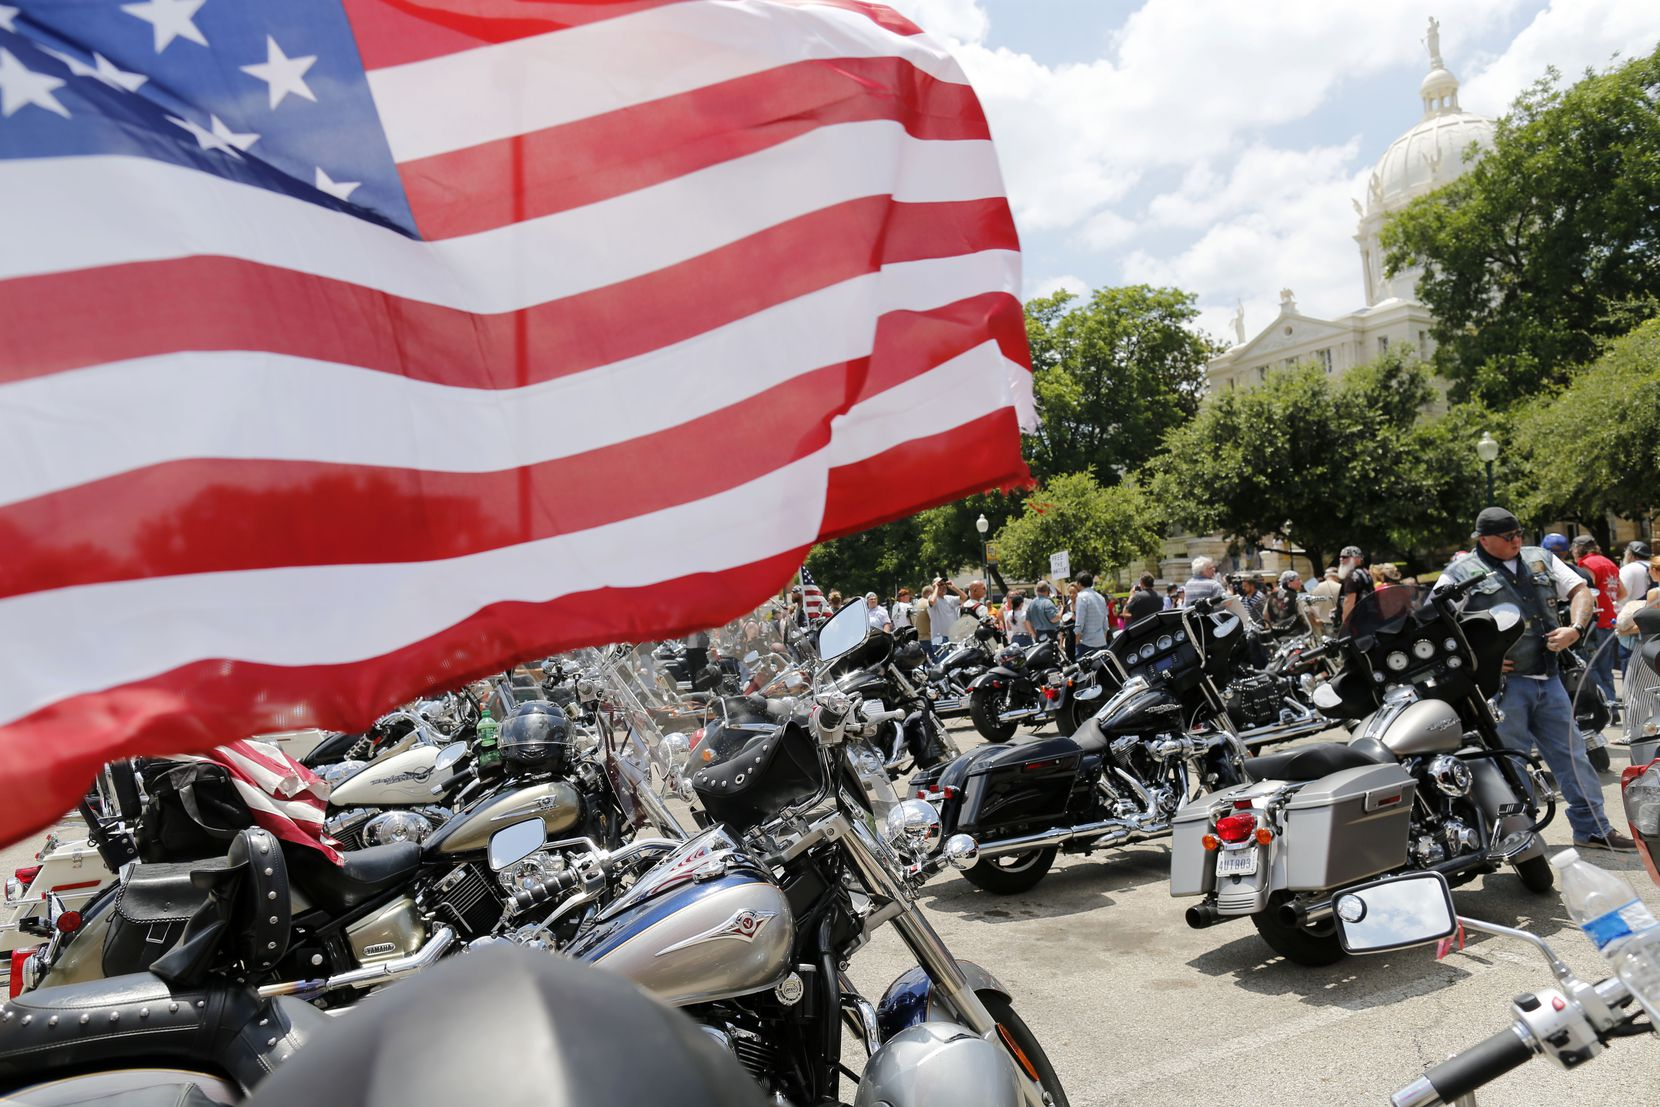 Bikes lined up in the parking lot during a motorcycle rally near McLennan County Courthouse in Waco, on Sunday, June 7, 2015. The bikers peacefully protested the recent action of local, state and federal law enforcement and administrative officials. (Vernon Bryant/The Dallas Morning News)